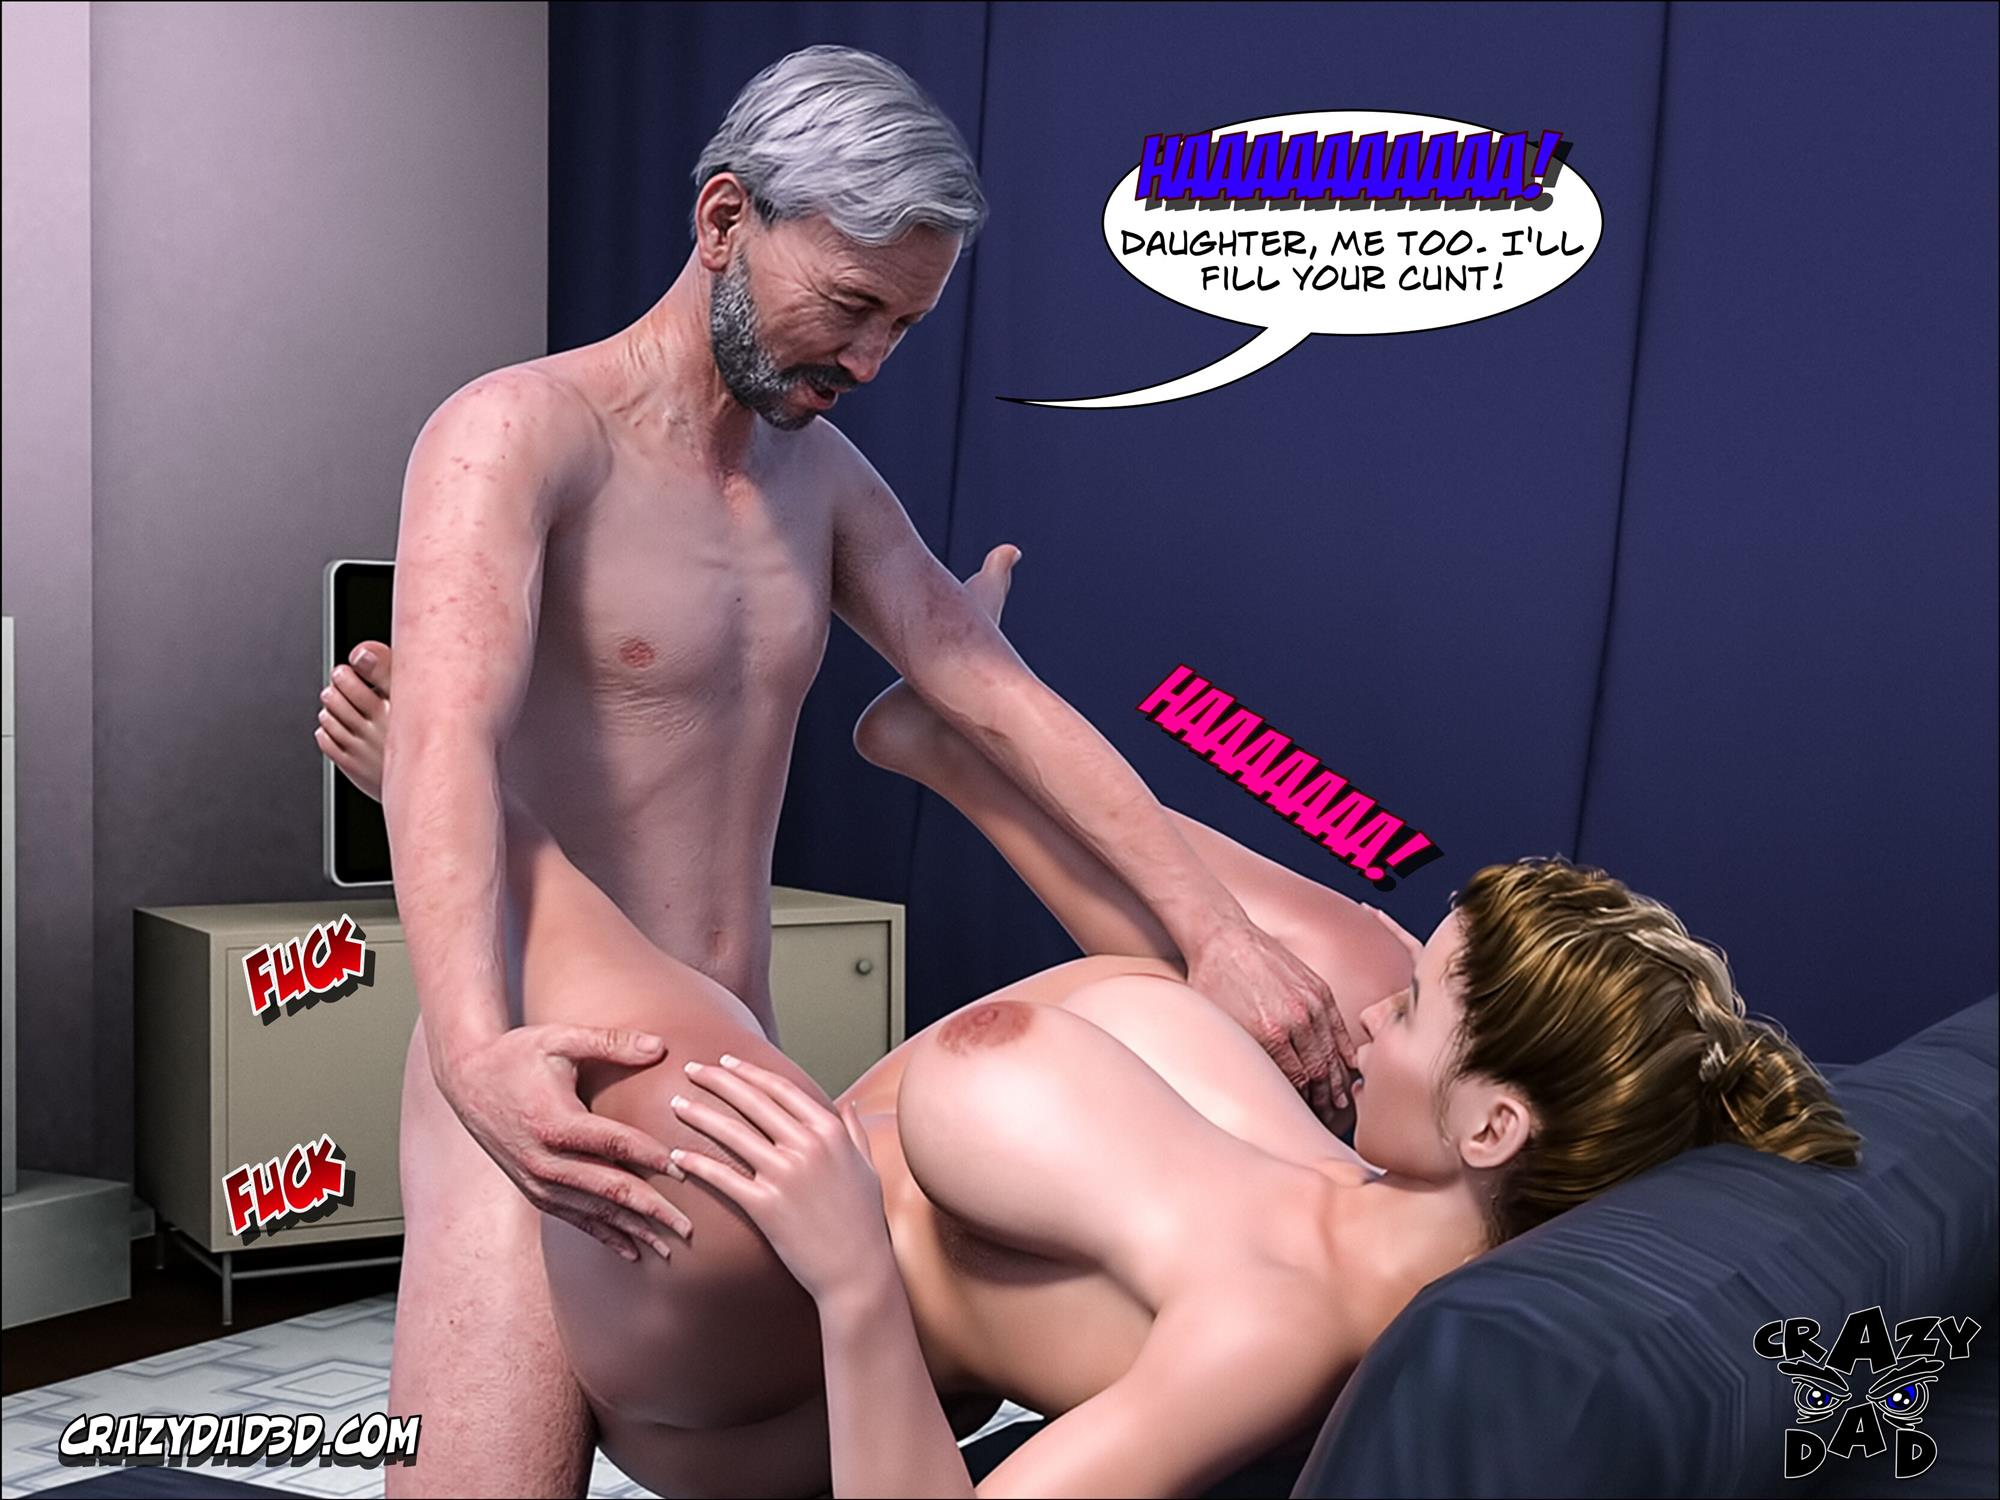 Father-in-Law at Home 10 [Crazy Dad 3D] - Foto 52